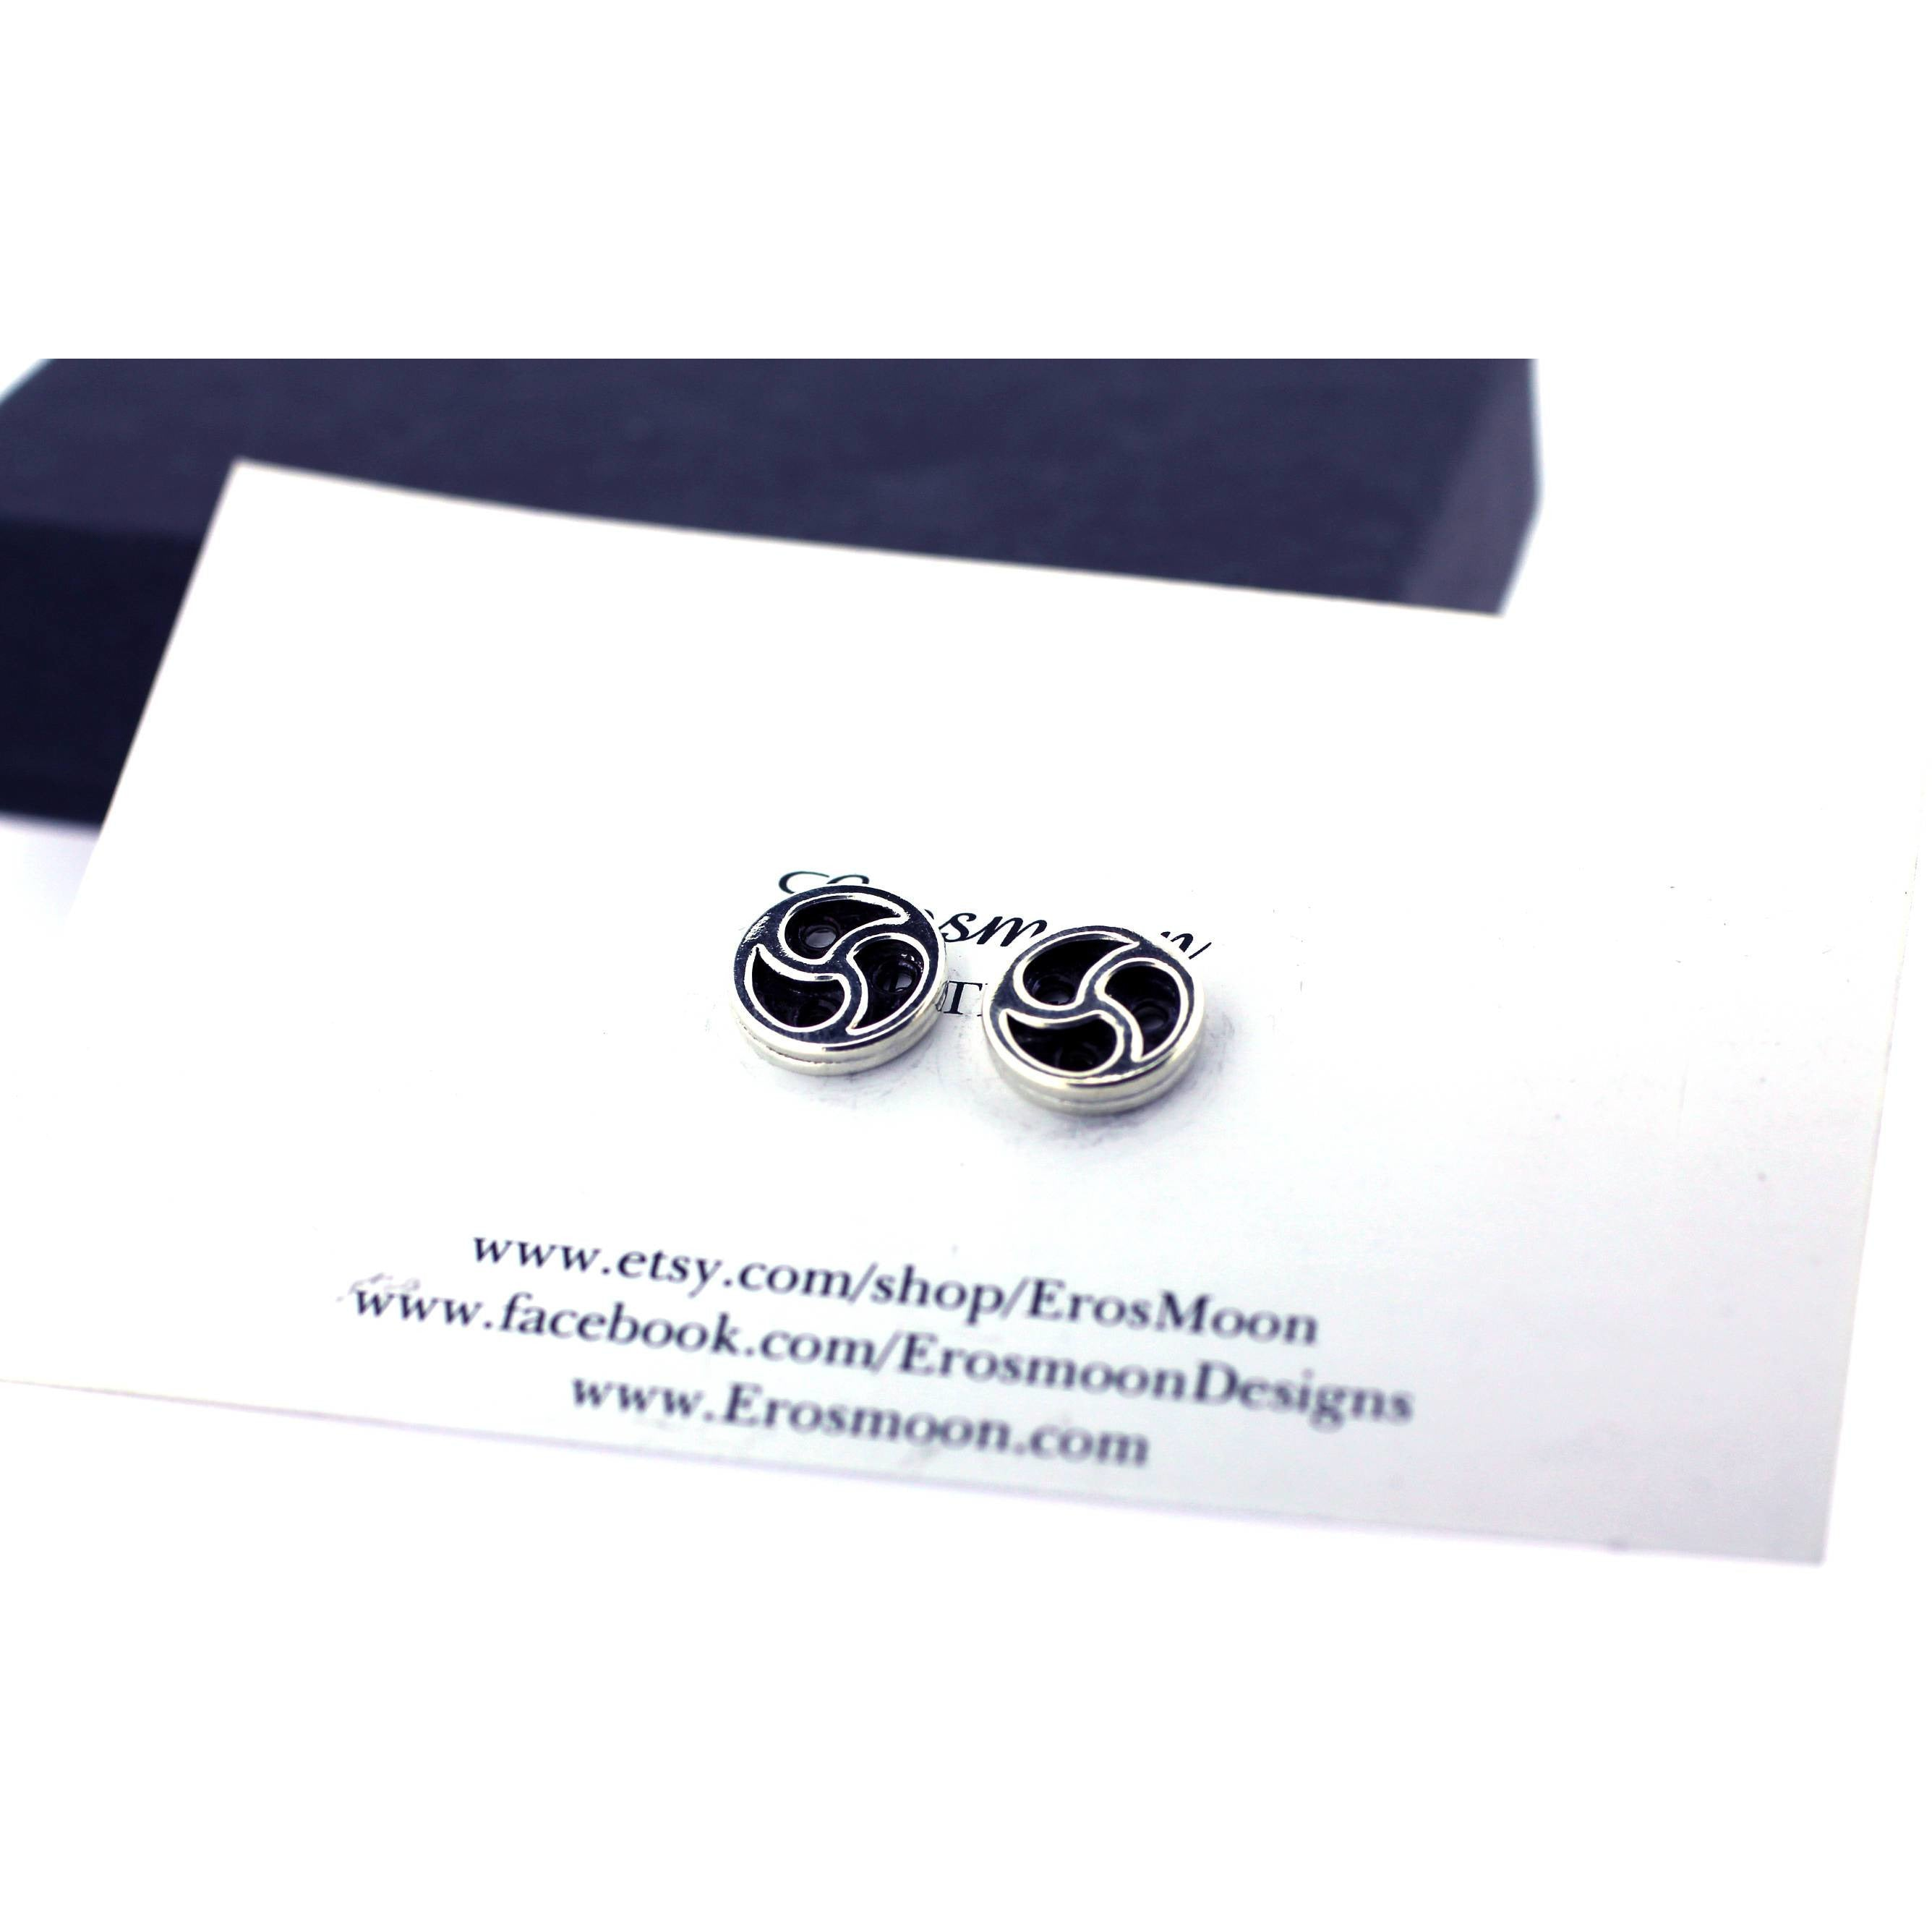 BDSM SYMBOL STUD EARRINGS STERLING SILVER HANDMADE 10mm